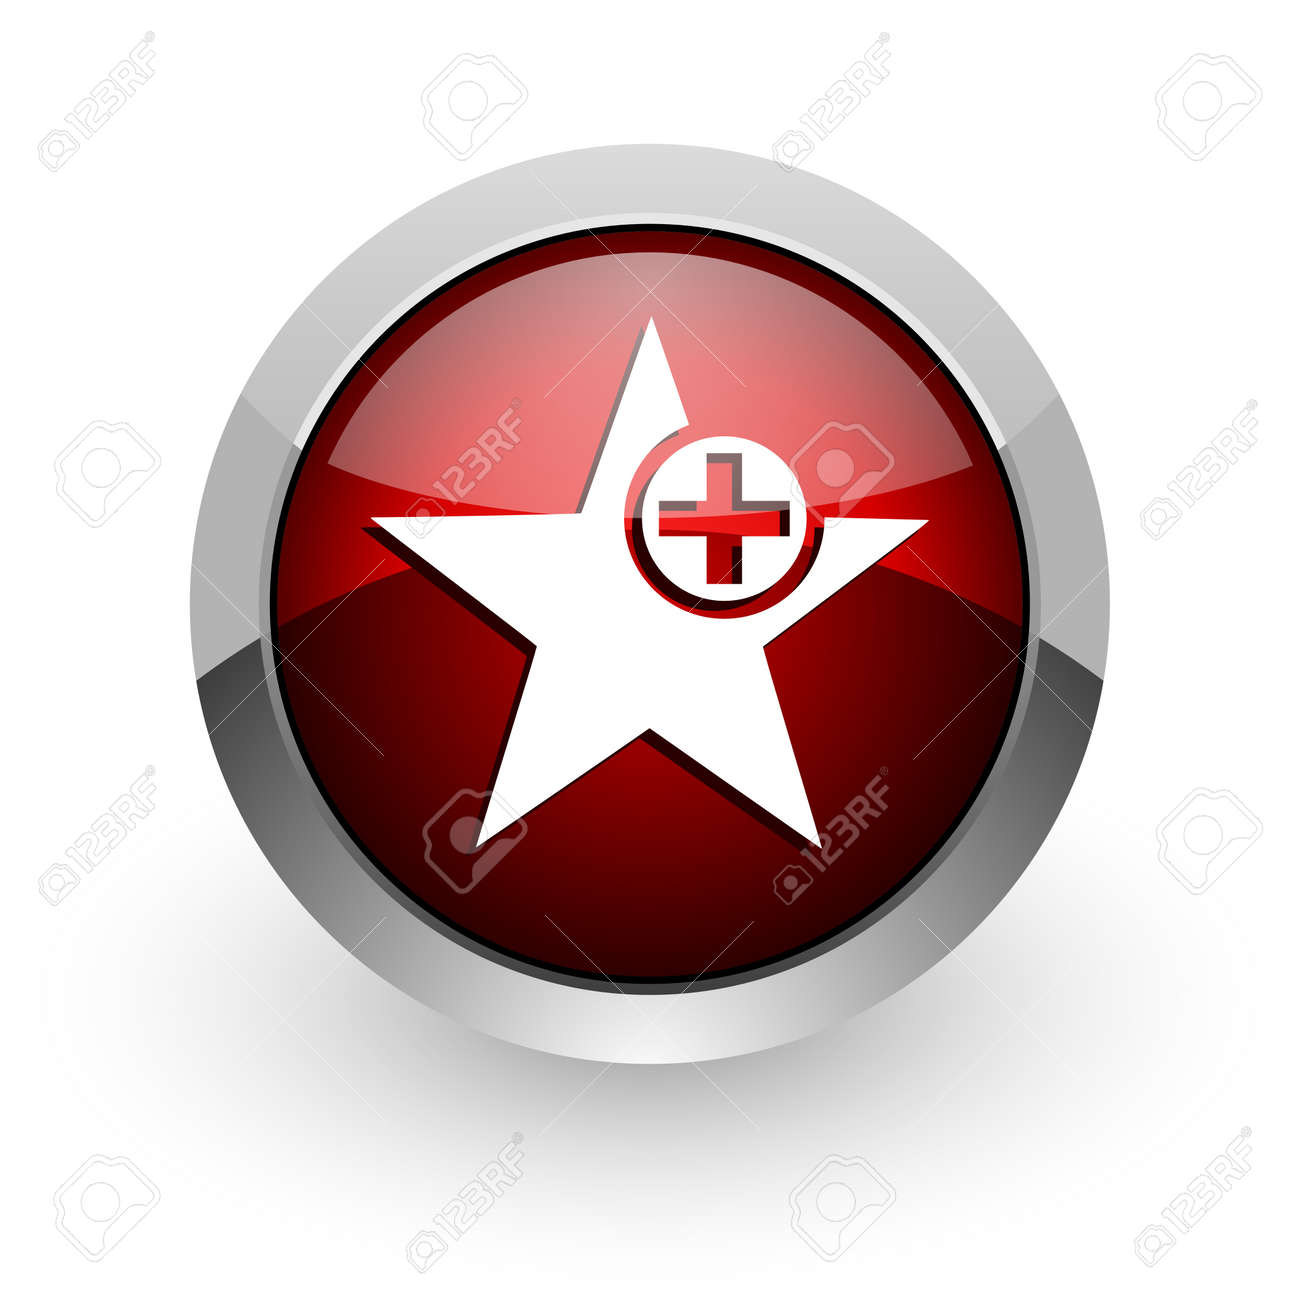 star red circle web glossy icon Stock Photo - 18578870